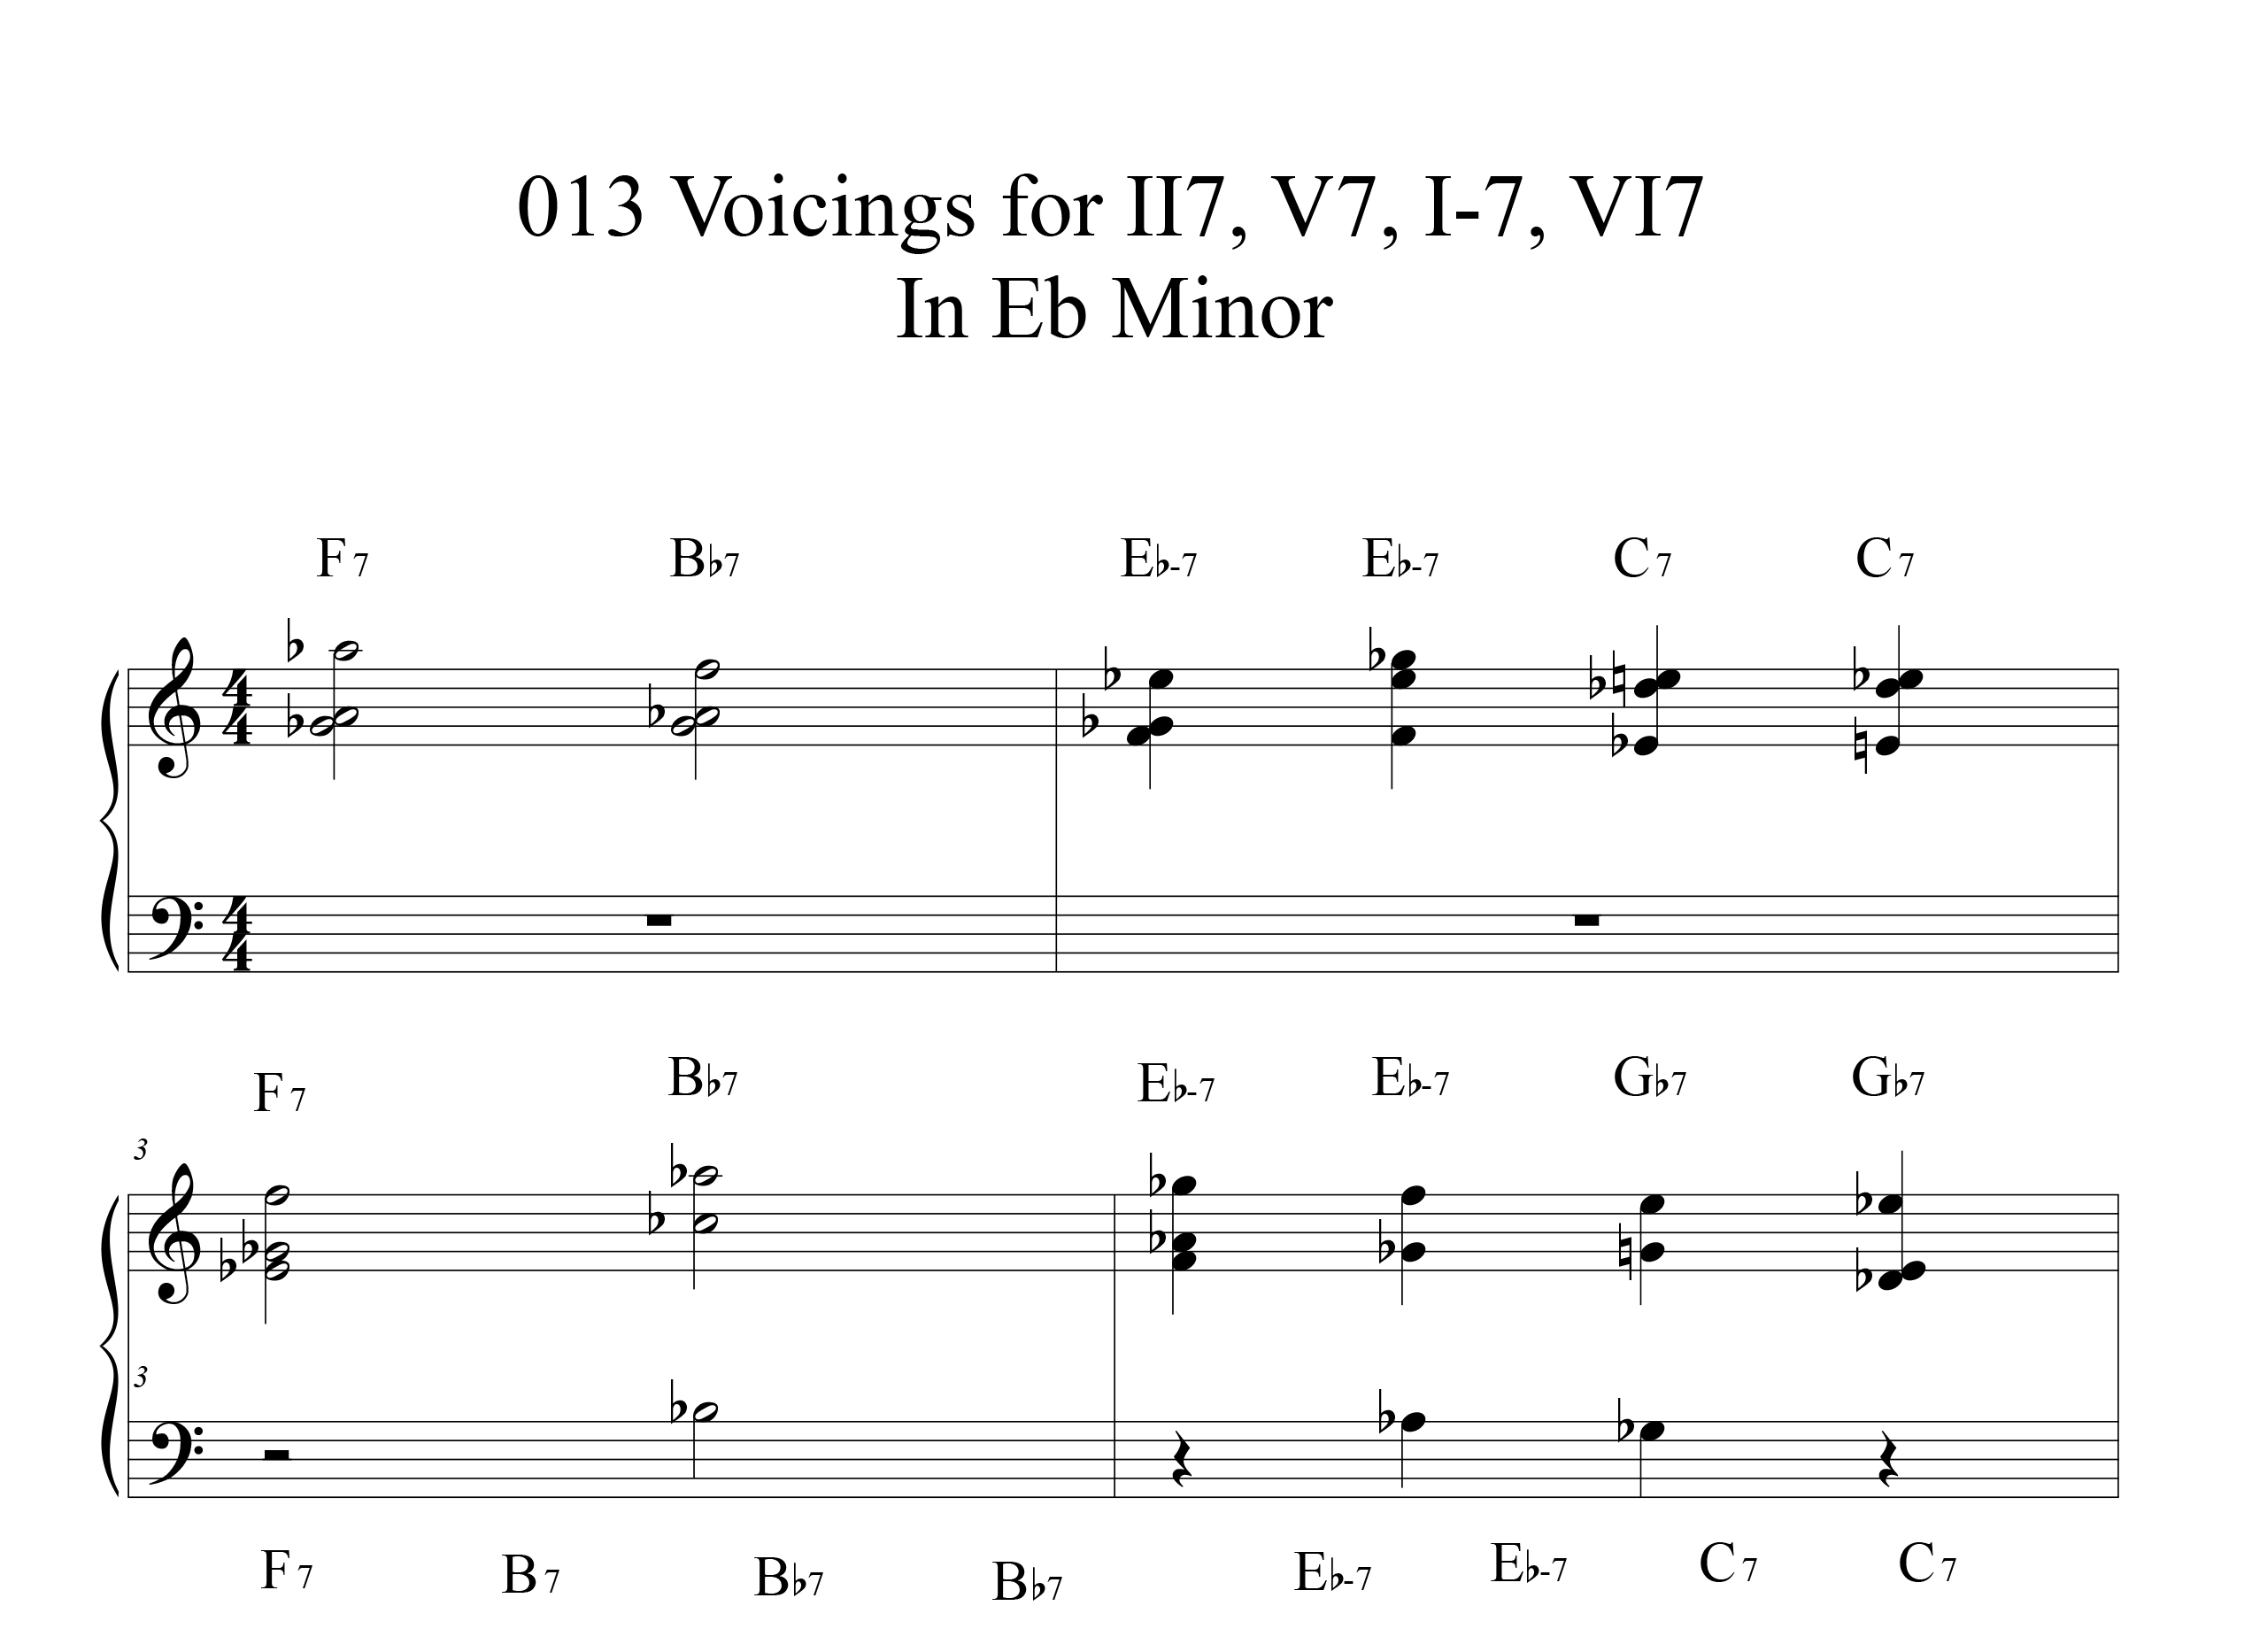 Applying-013-chord-voicings-key-of-Eb-etude by Bruce Arnold for Muse Eek Publishing Company